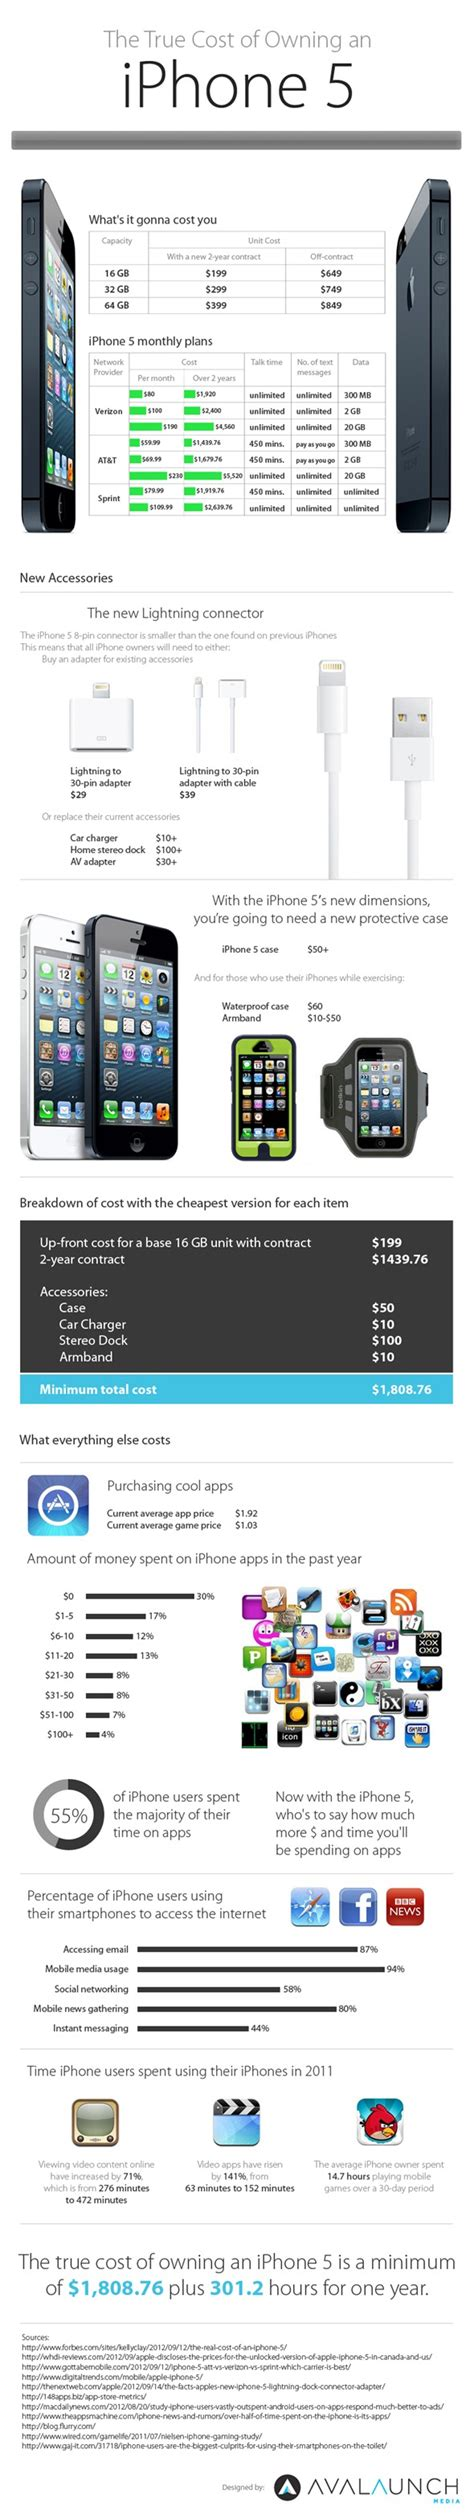 cost of iphone 5 buying a subsidized iphone 5 with a two year contract can